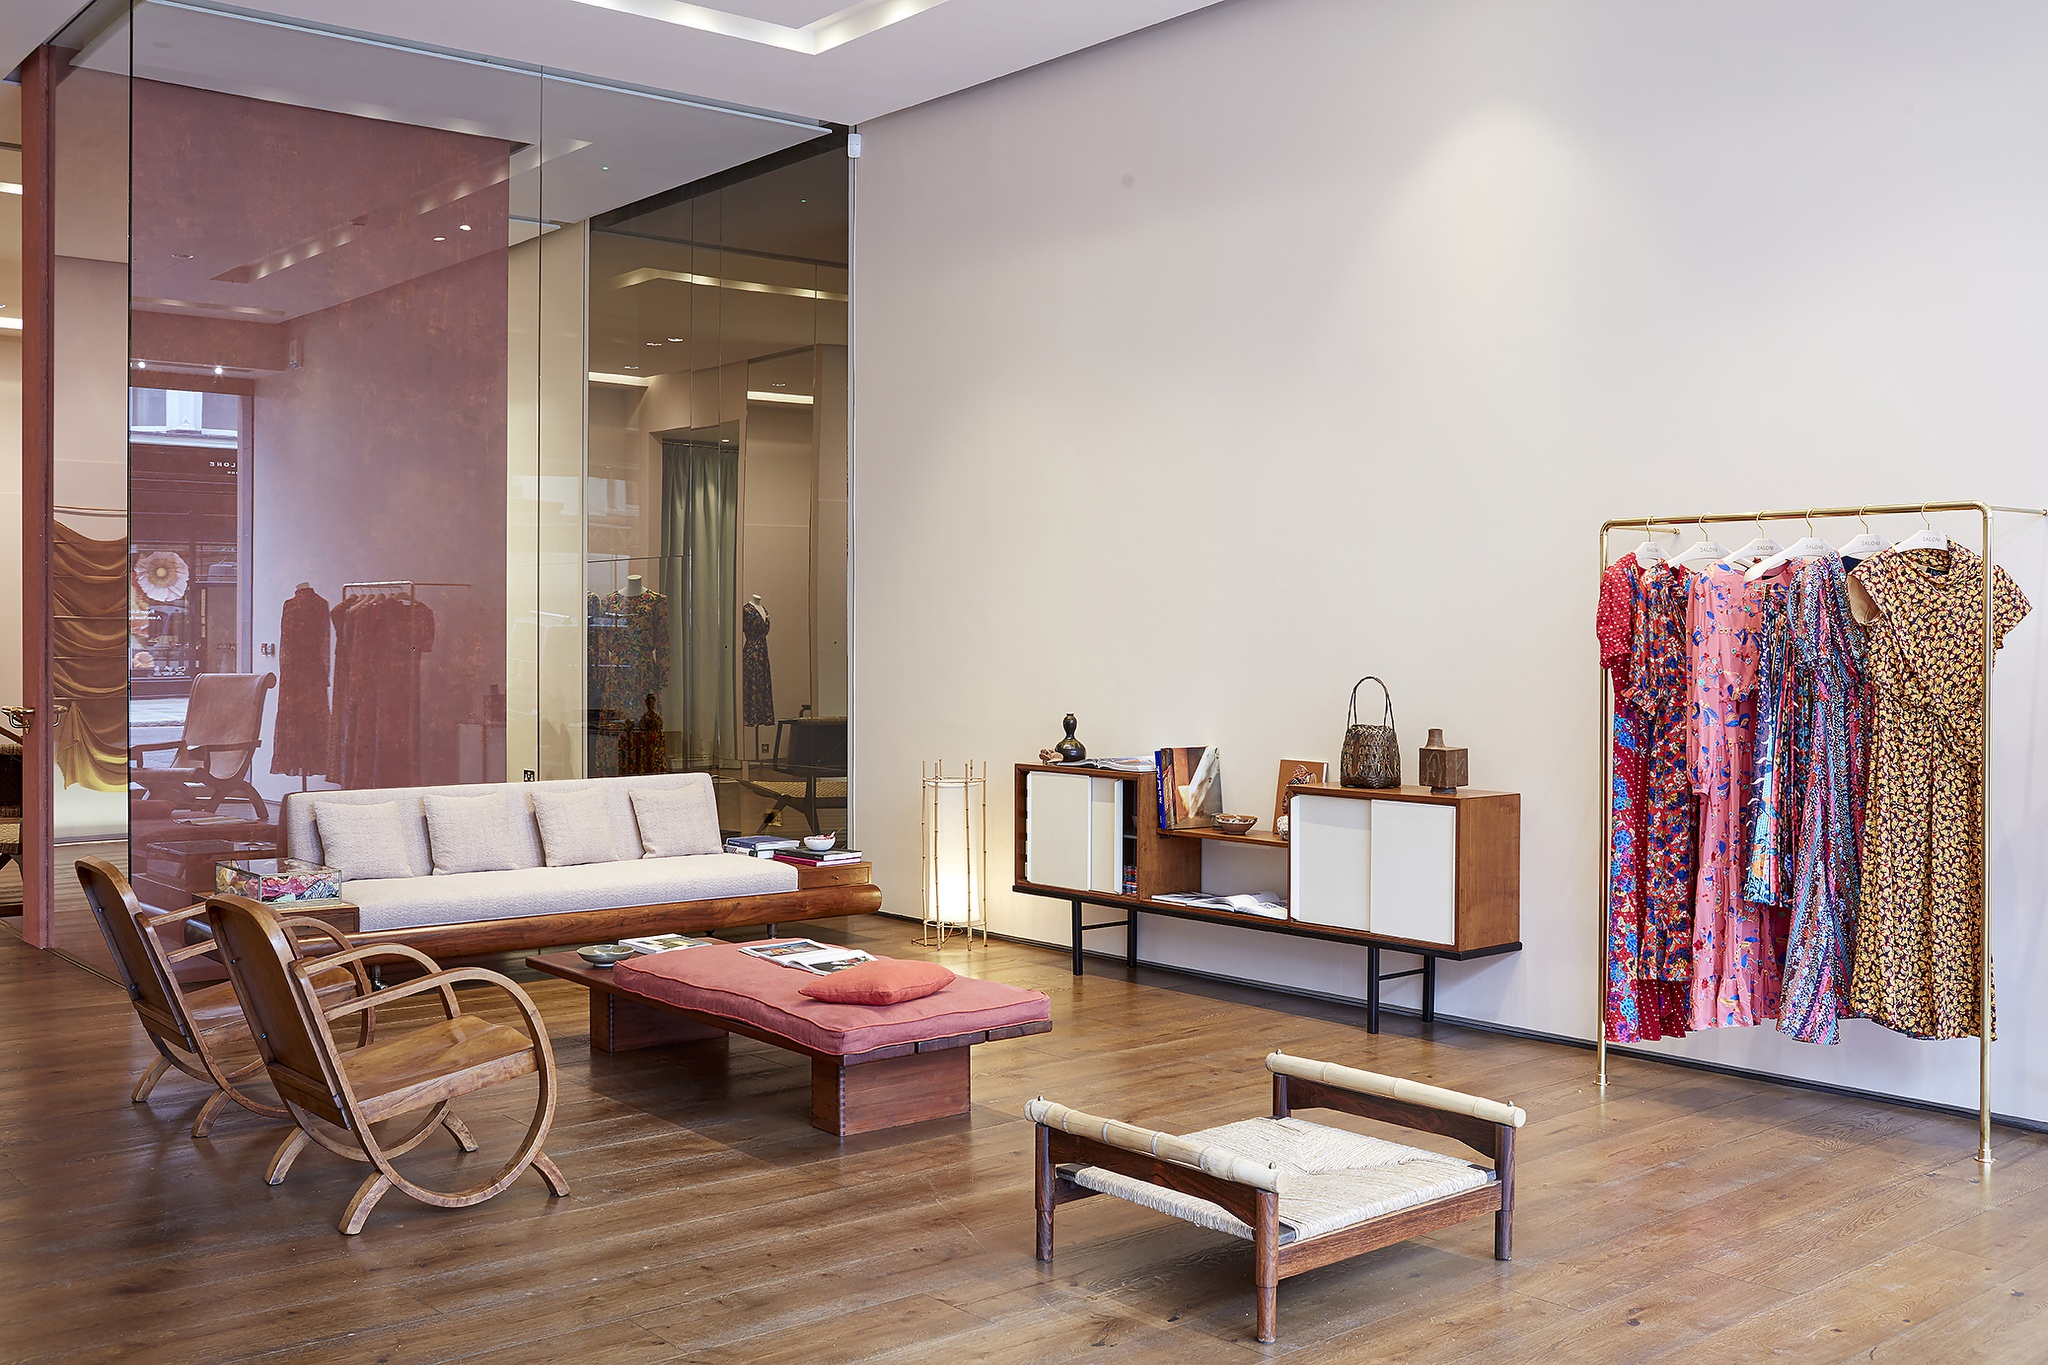 The interior of the Saloni pop-up store in London.